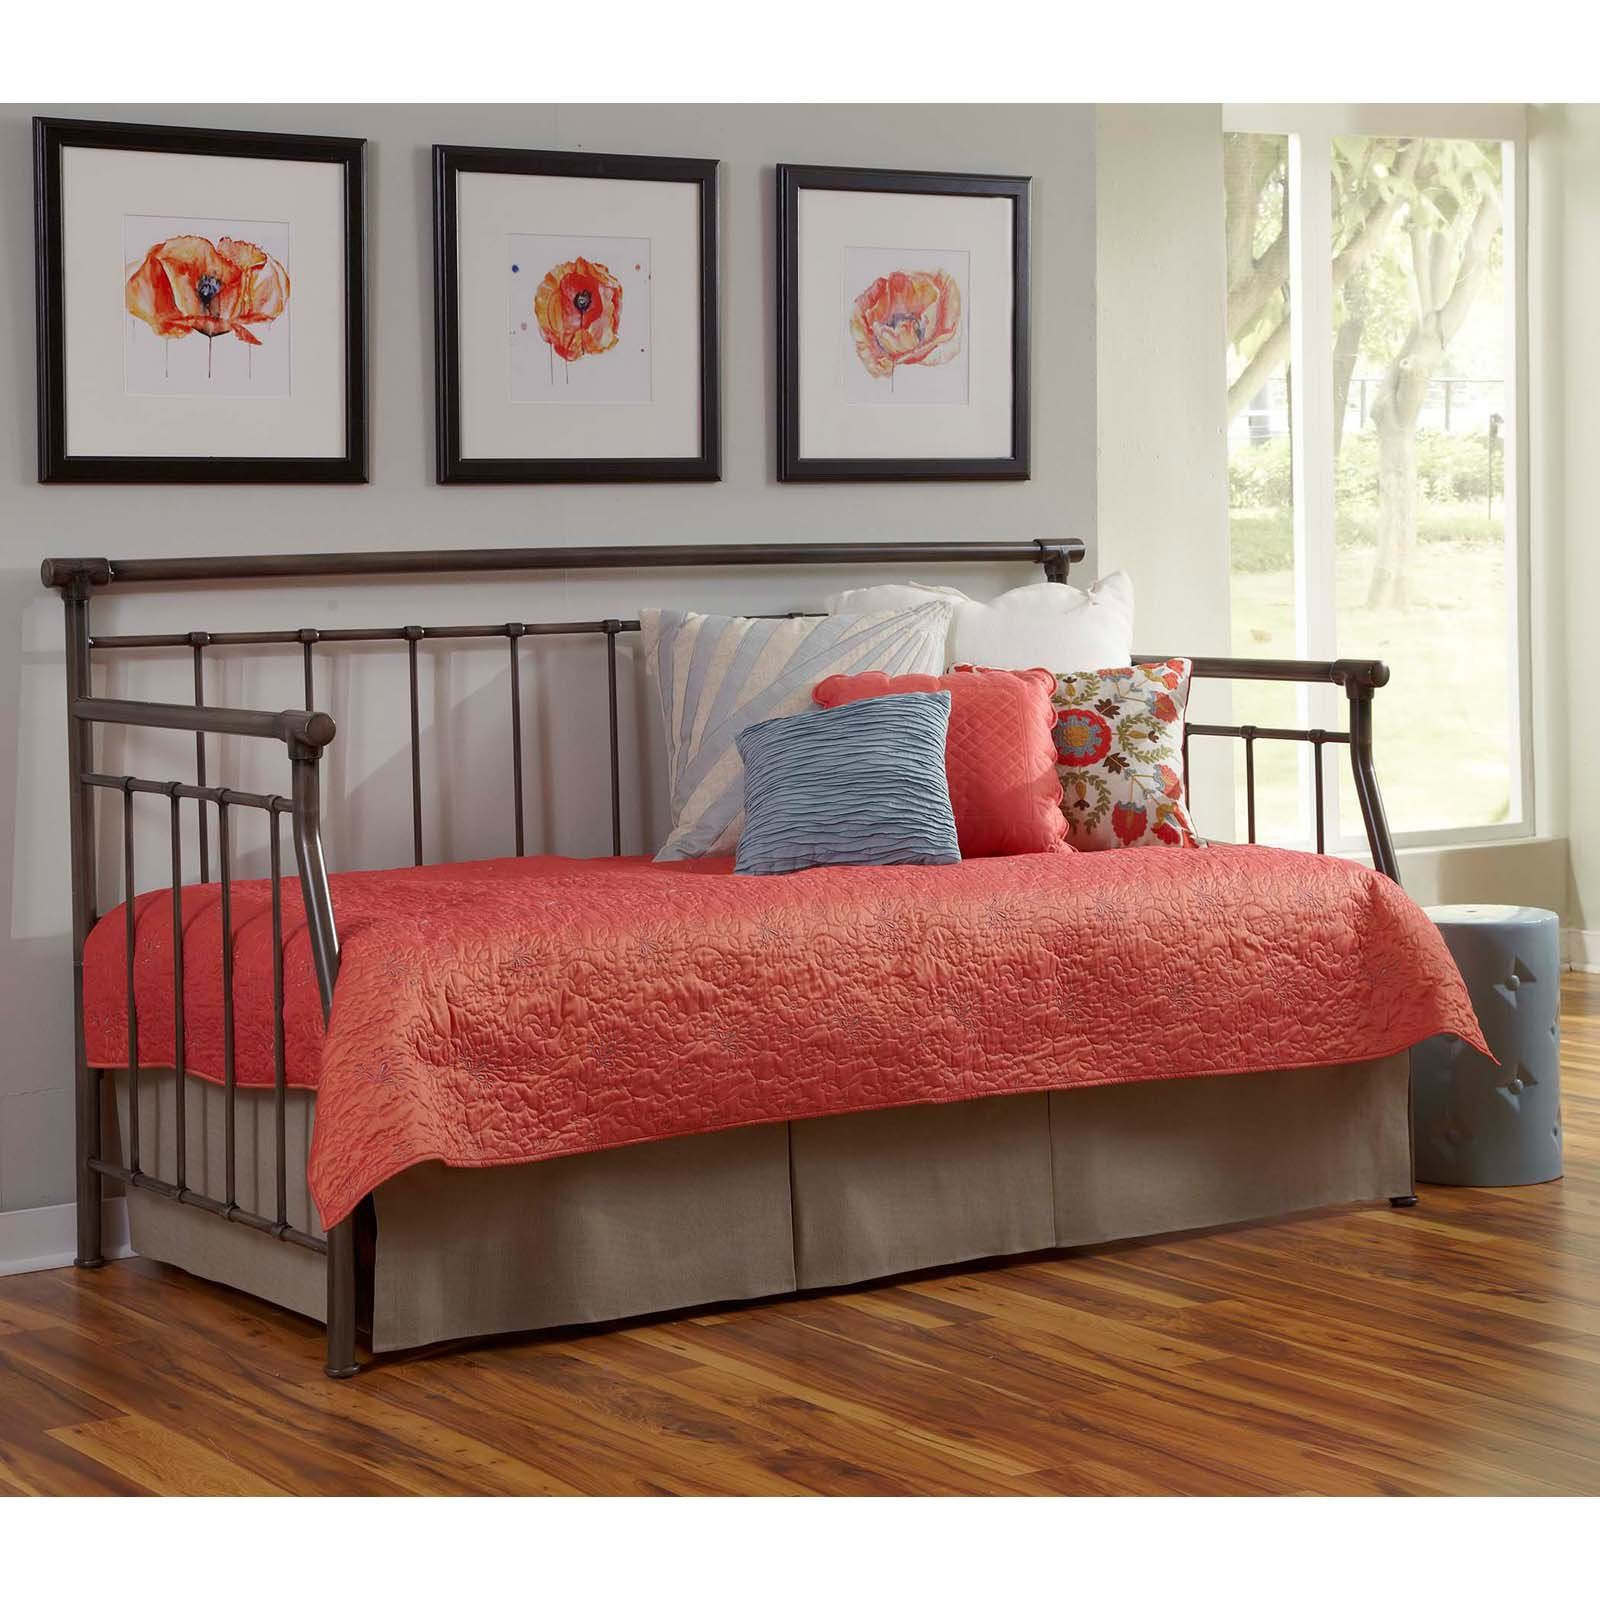 Morraine Metal Daybed from Bed frame and